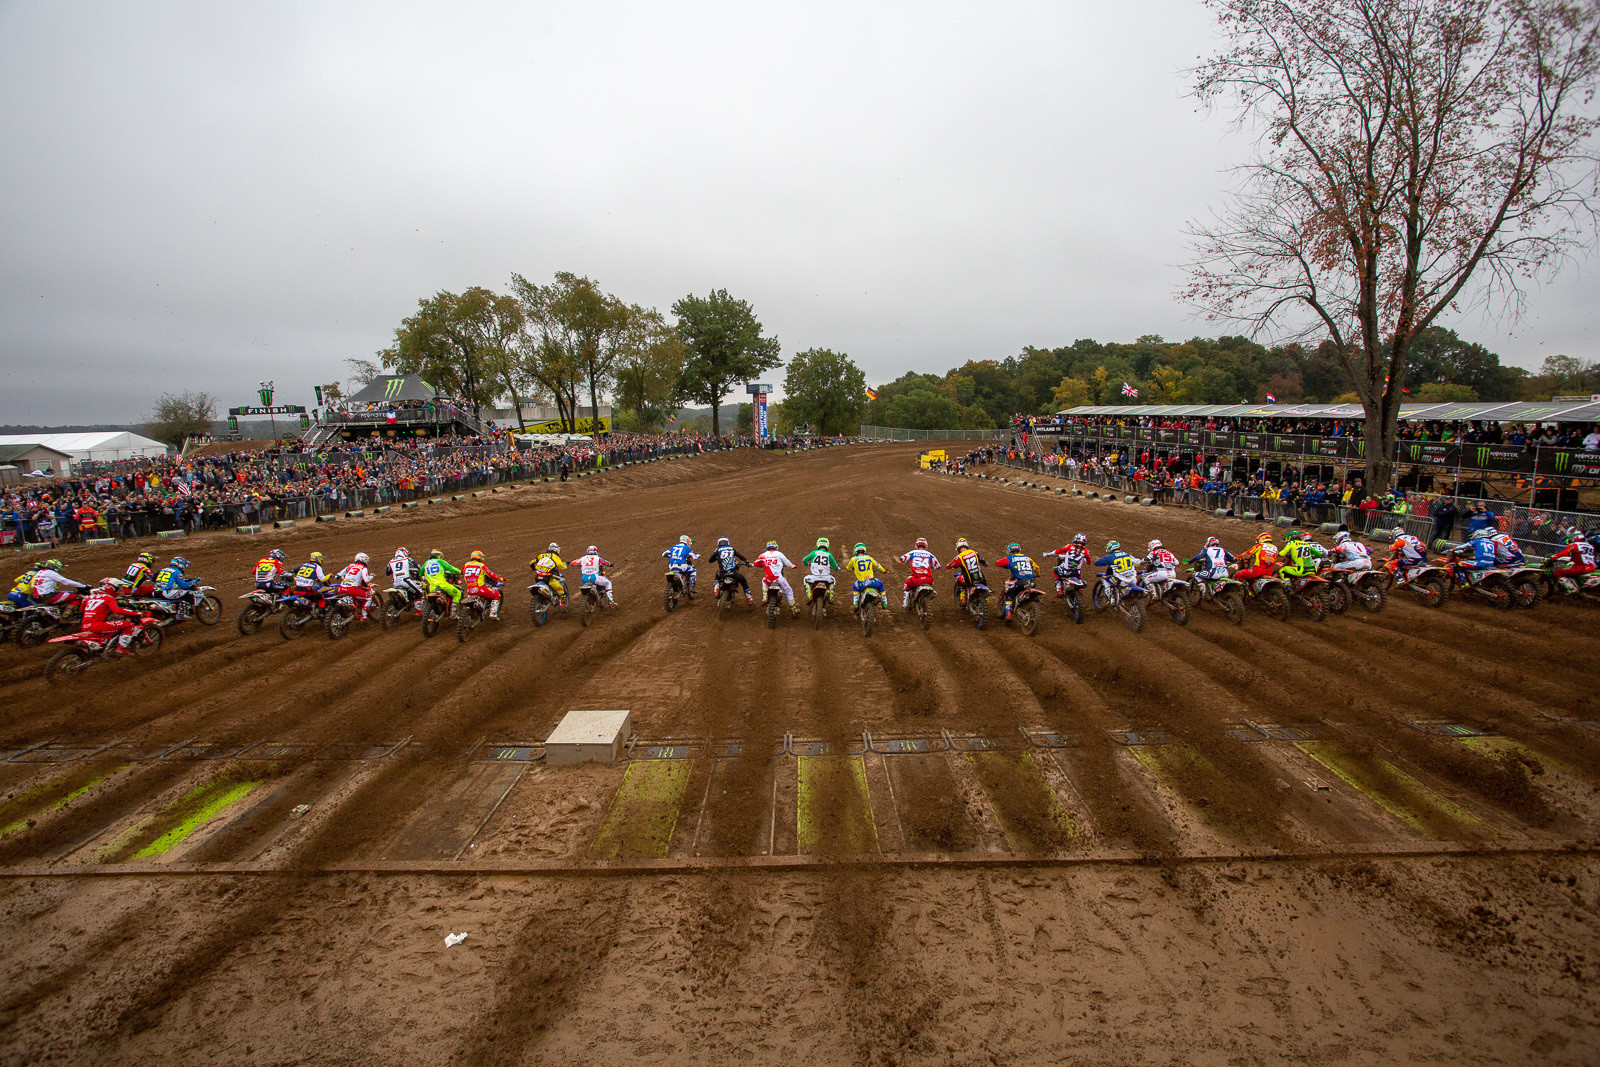 As the riders launched out of the gate for the final moto of MXGP/Open action, it was Glenn Coldenhoff grabbing another great start and moving to the front of the pack.